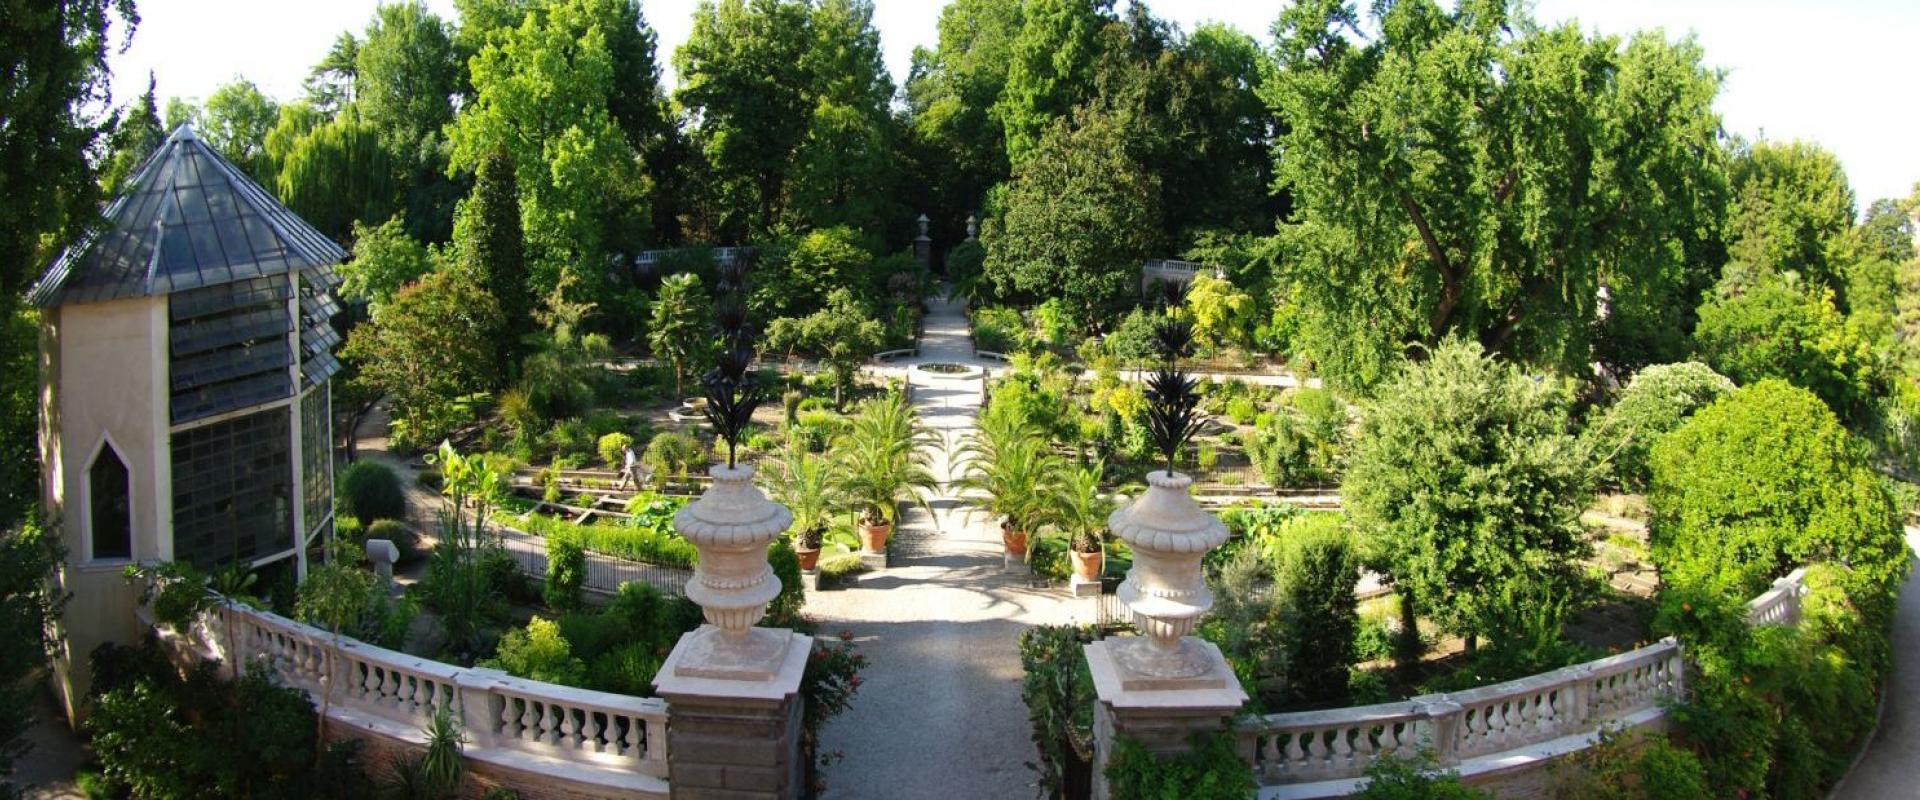 tour of the botanical garden of Padua